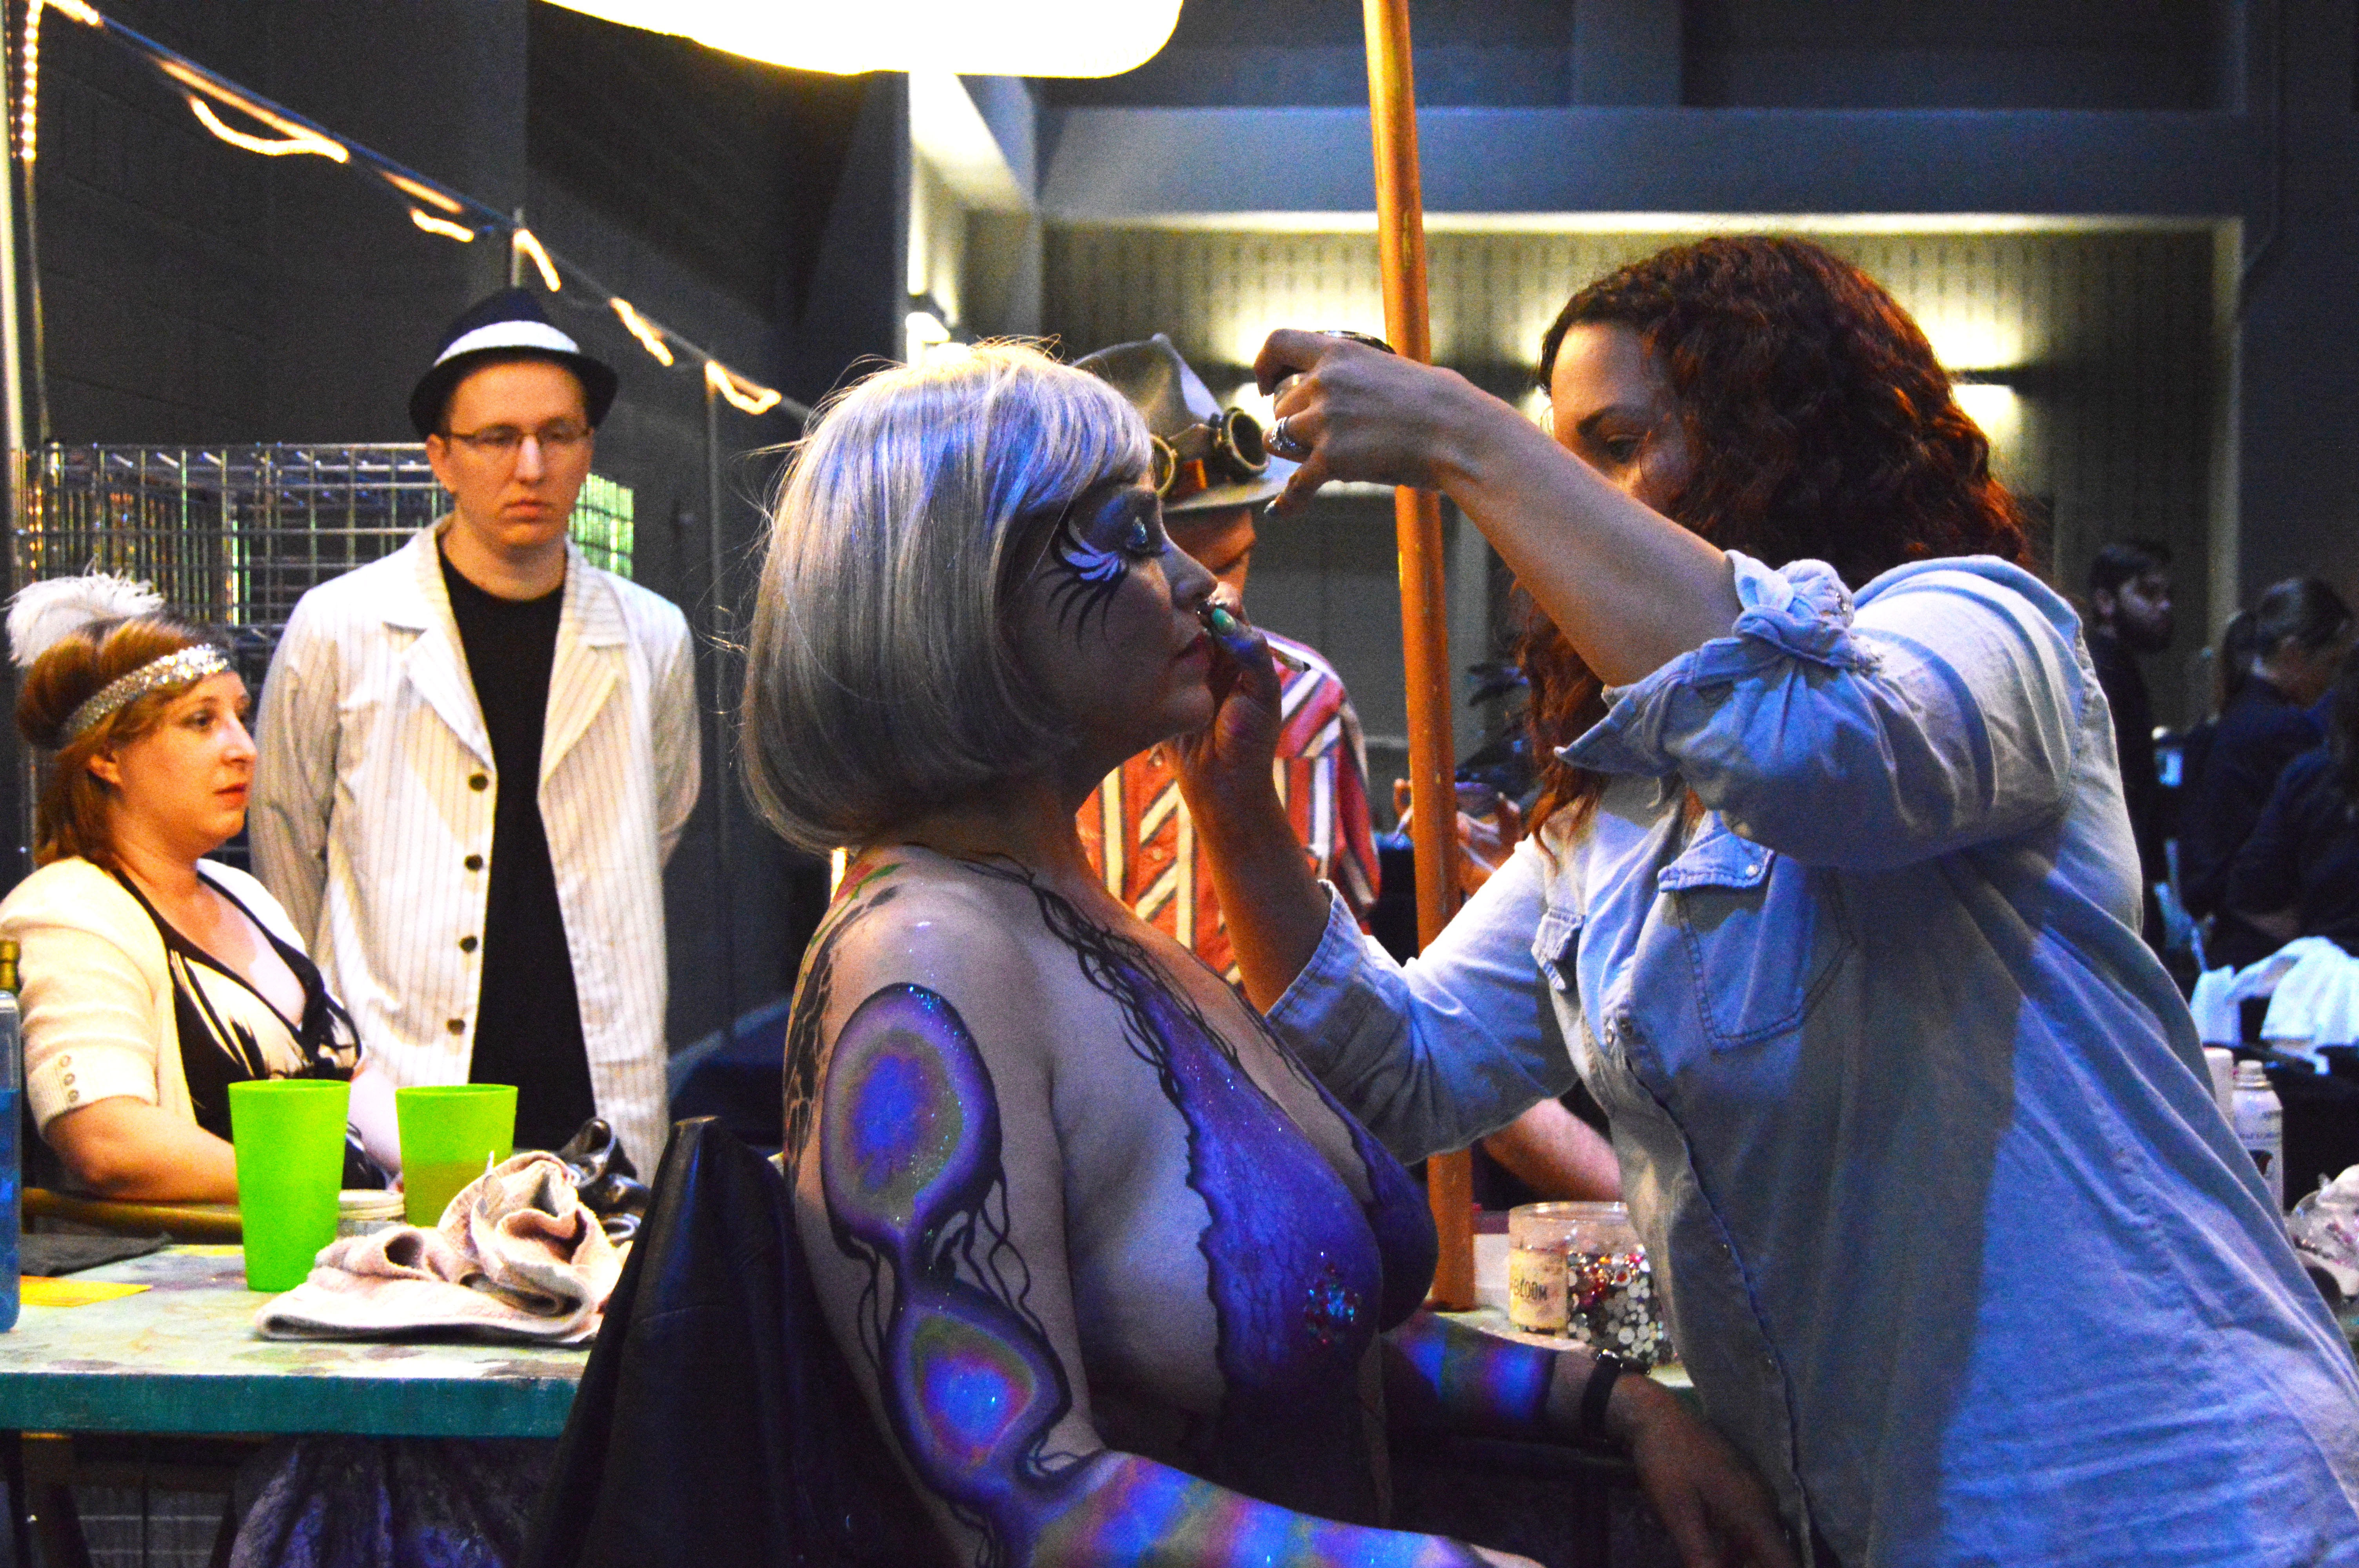 Carnaval's body painter, known as Kiwi, has a line at her booth throughout the entire evening. Women and men arrive topless to get painted with her intricate designs.